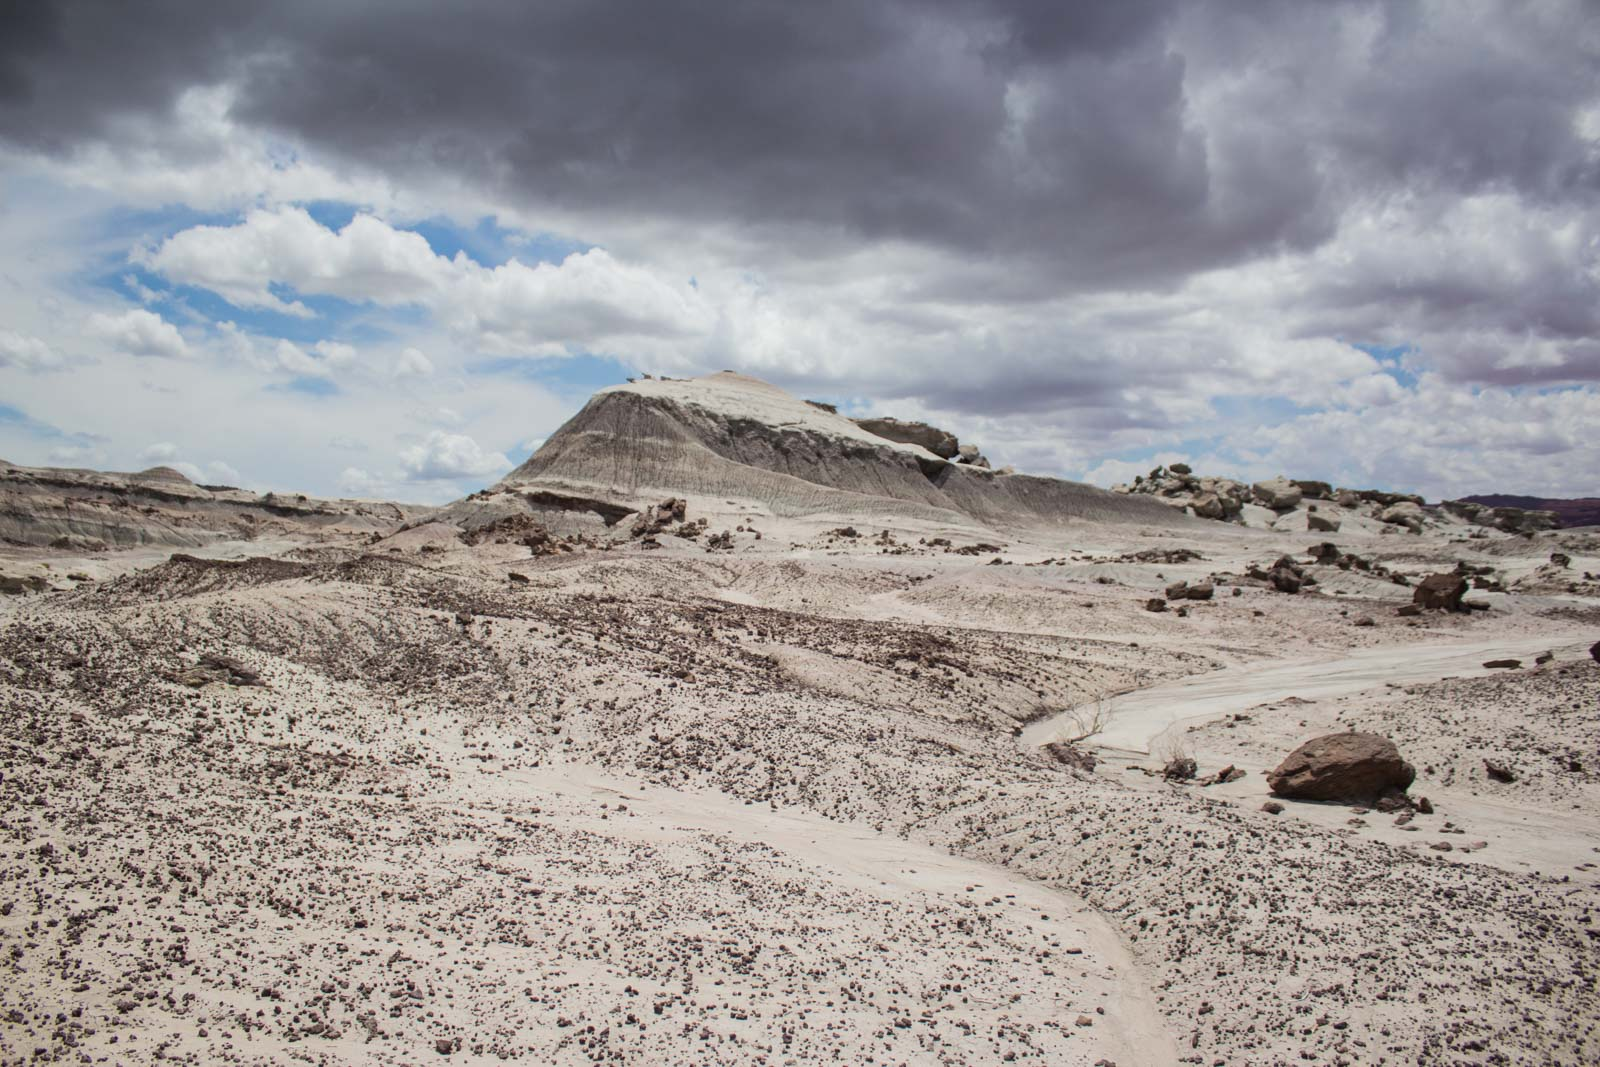 Ischigualasto National Park, Argentina